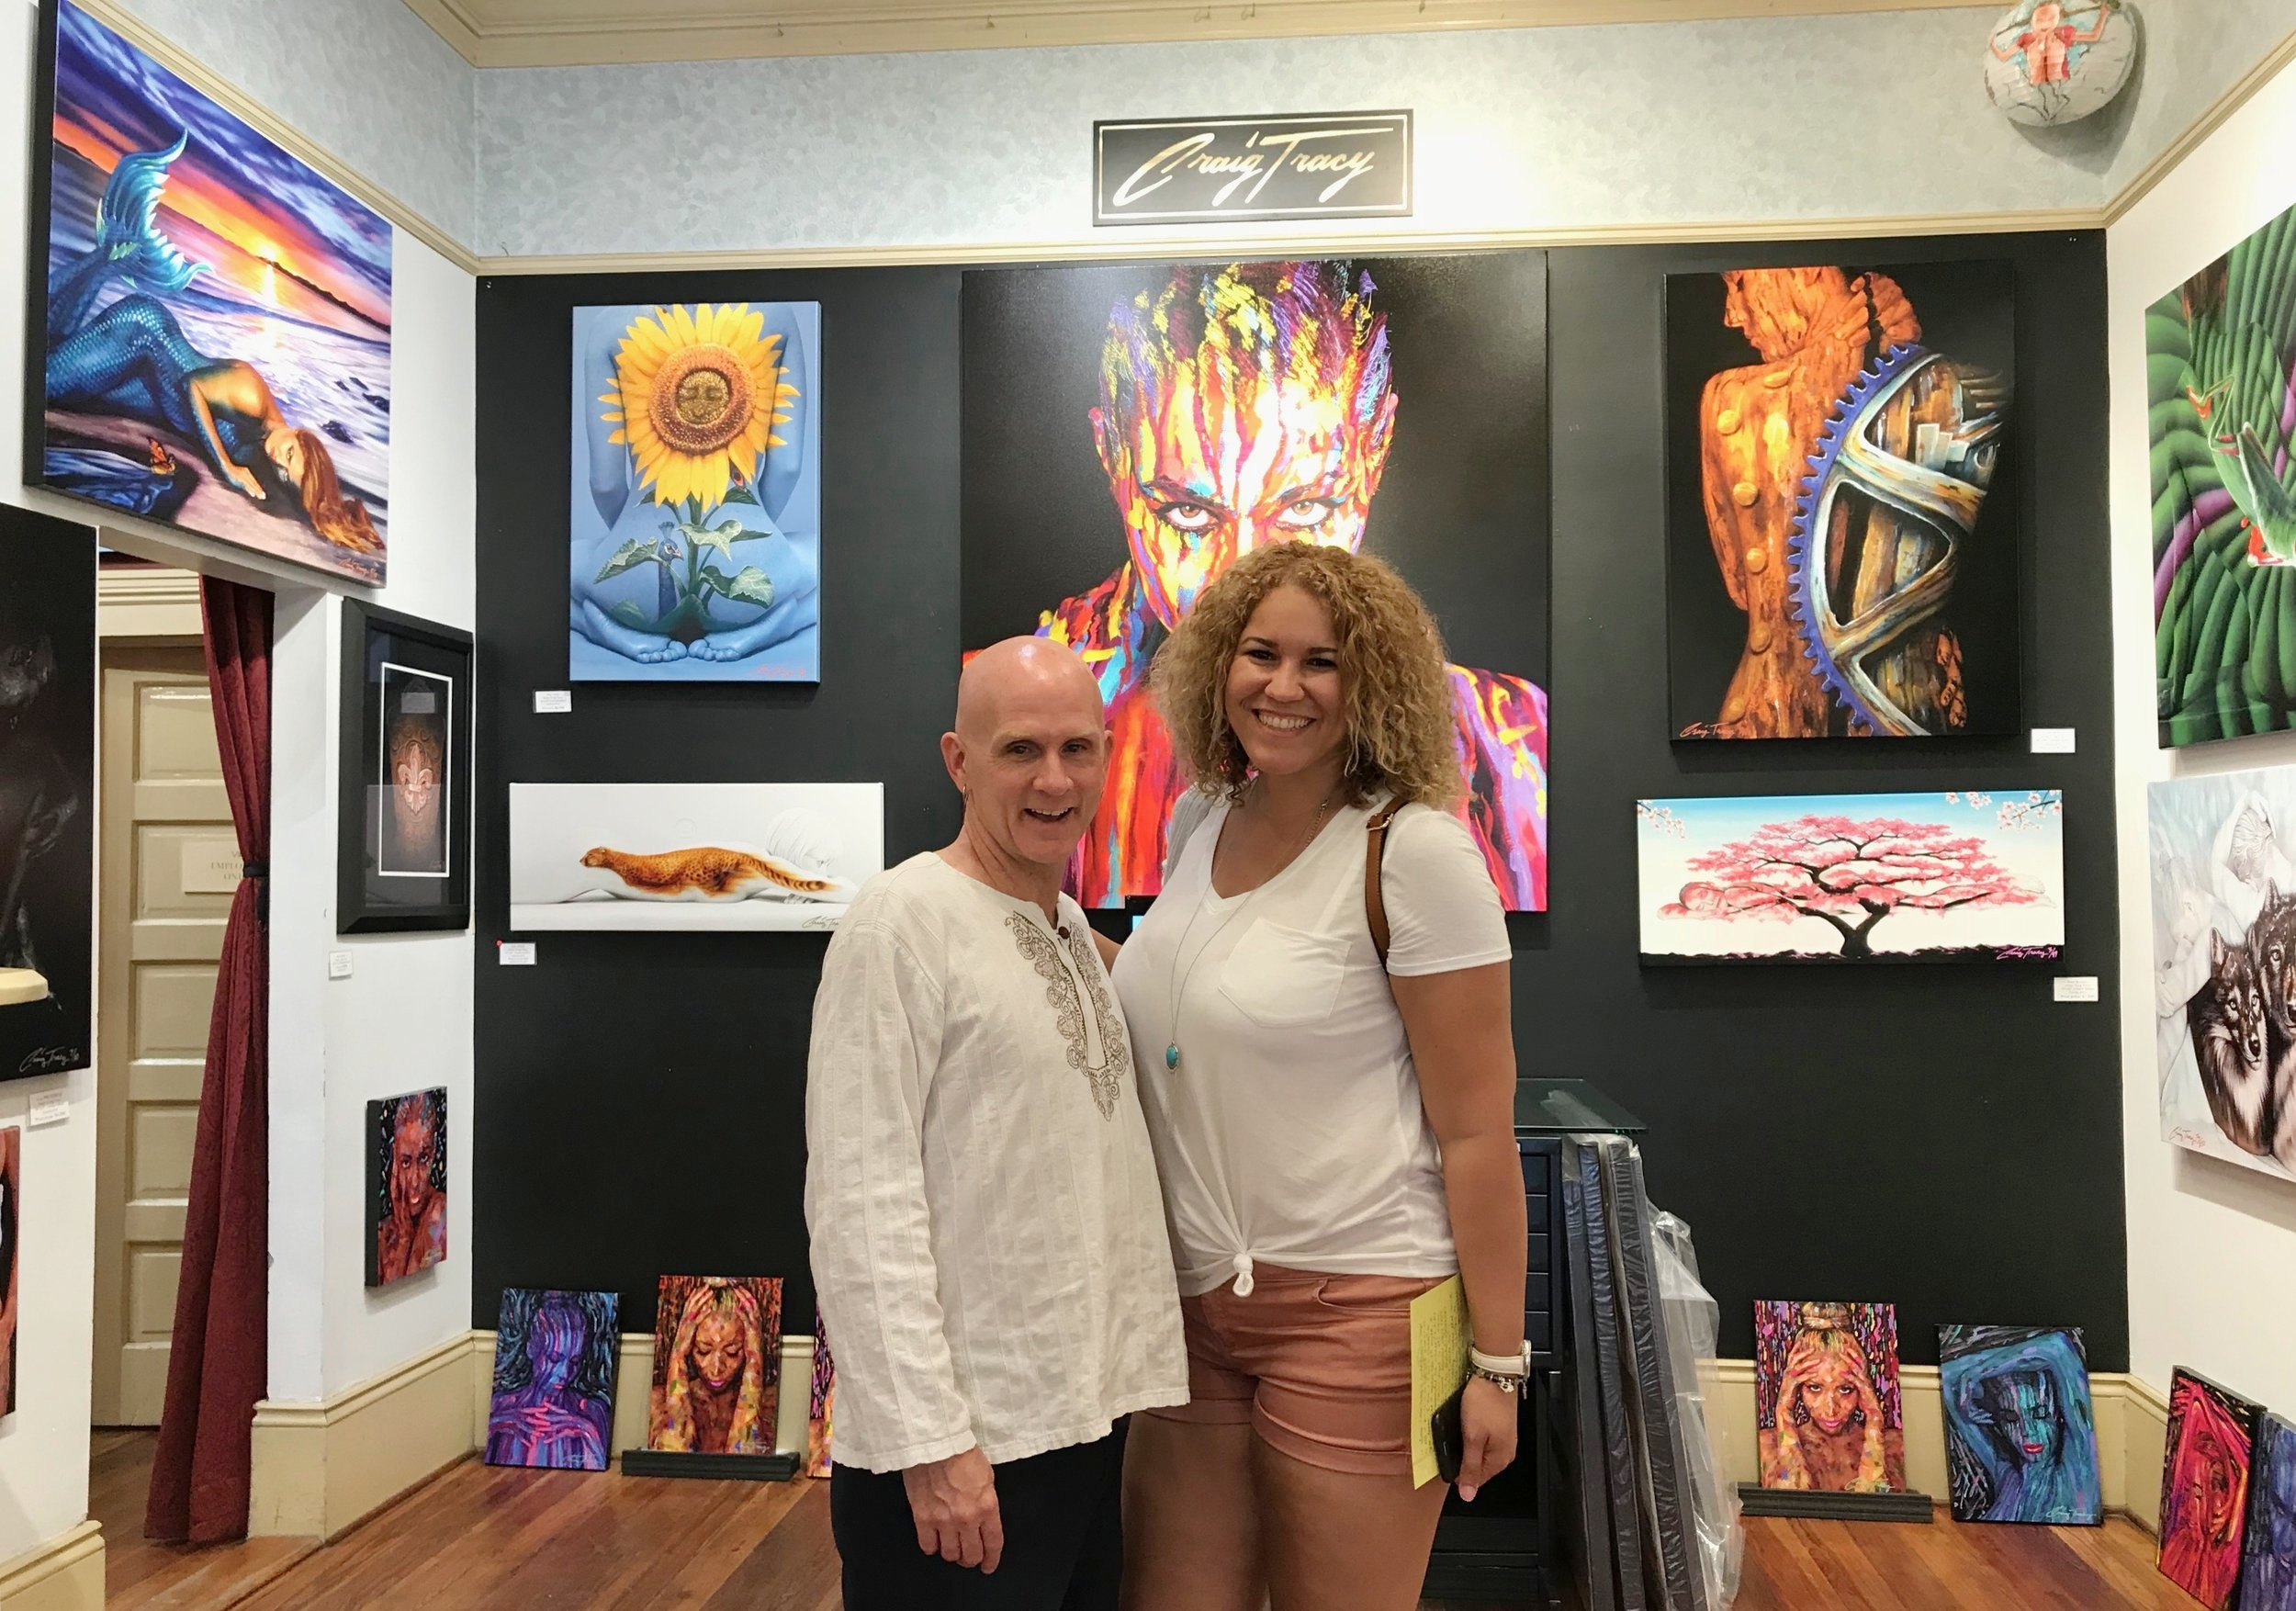 I even found Craig Tracy in his gallery! I followed Skin Wars, so I was very impressed to see his artwork in person.